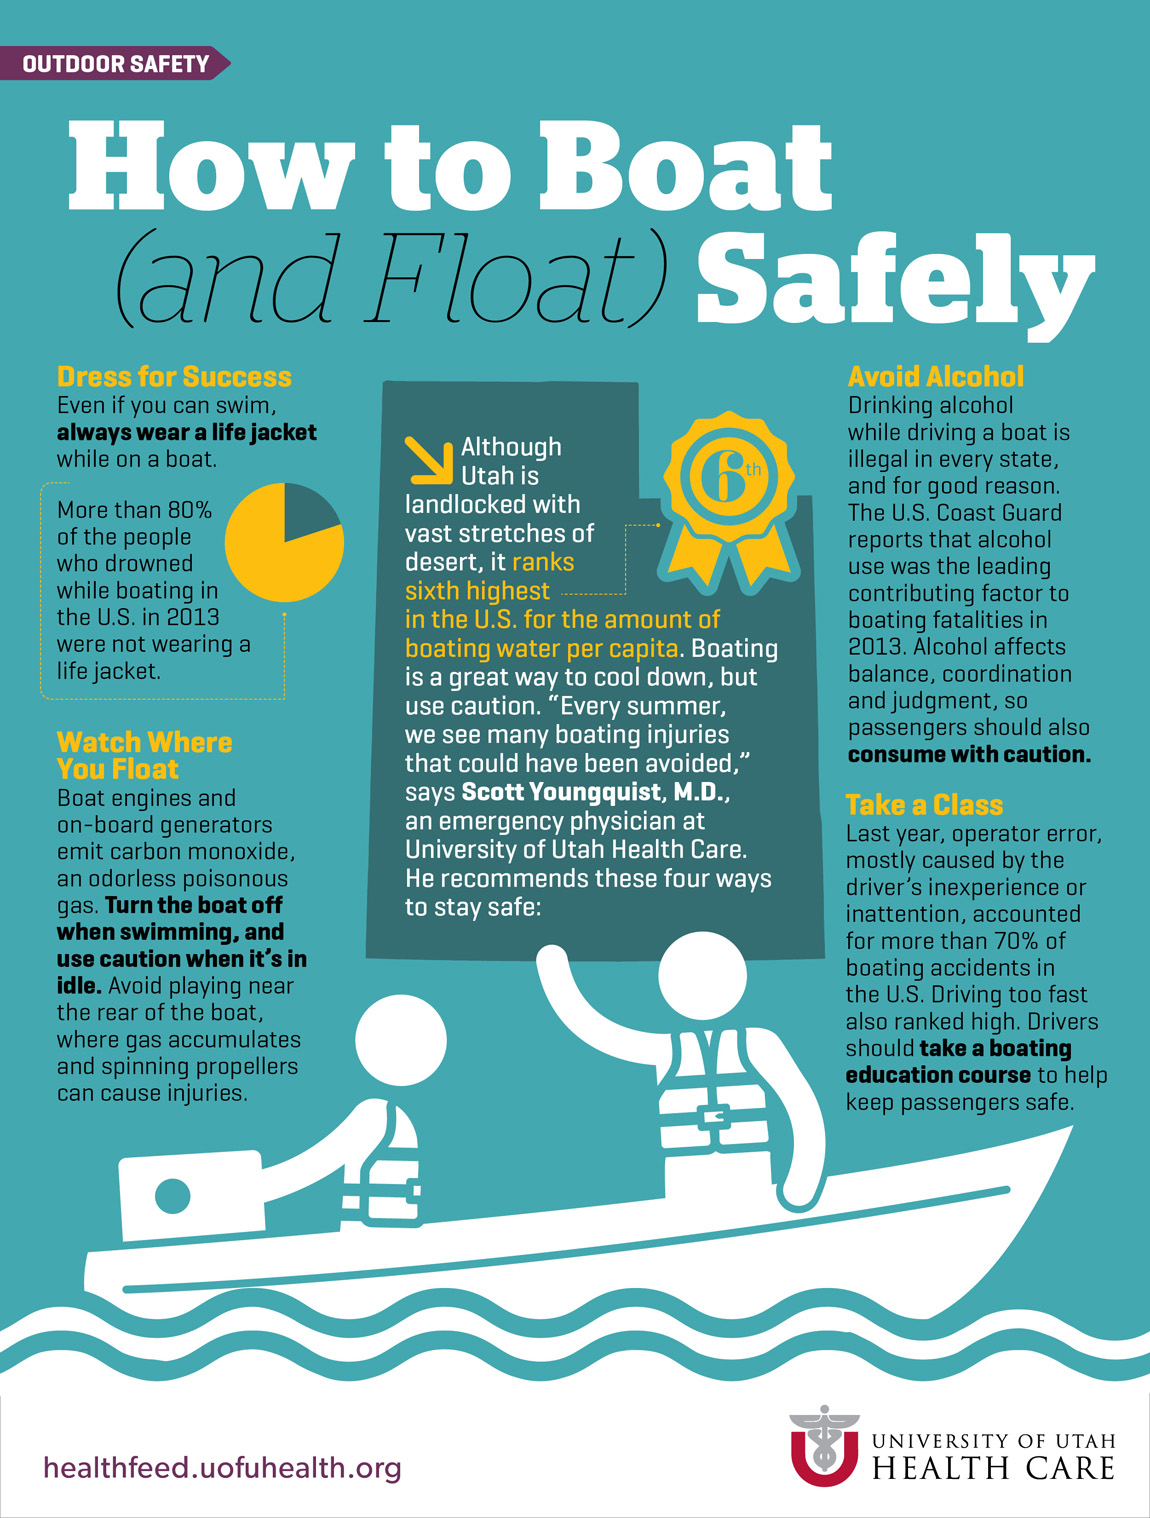 4 ways to stay safe while boating